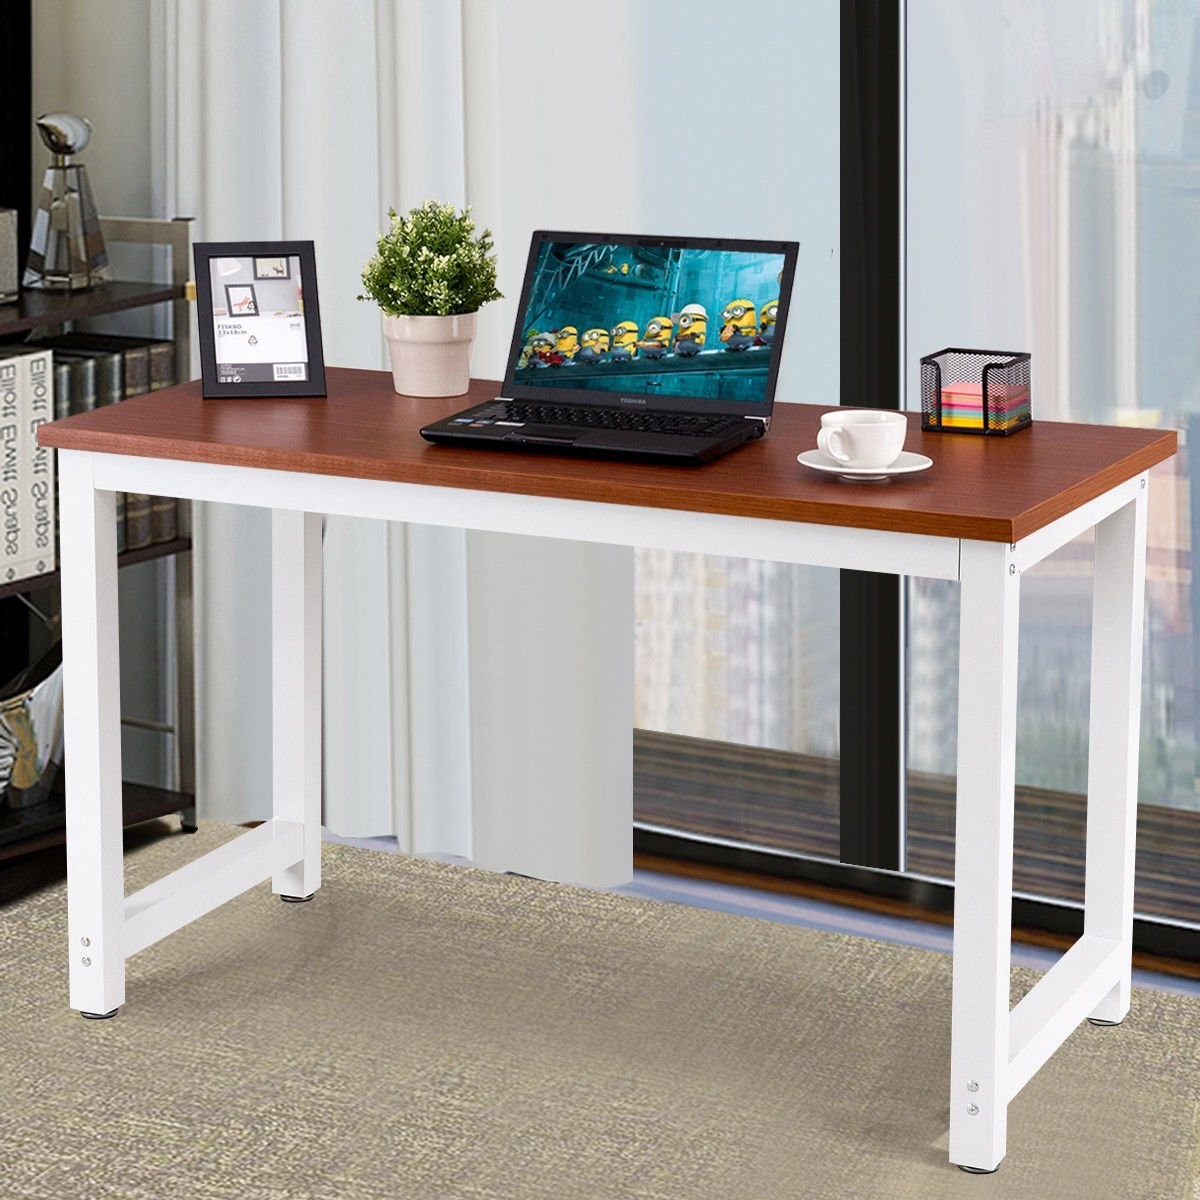 CHEFJOY Computer Desk PC Laptop Table Wood Work-Station Study Home Office Furniture, Coffee